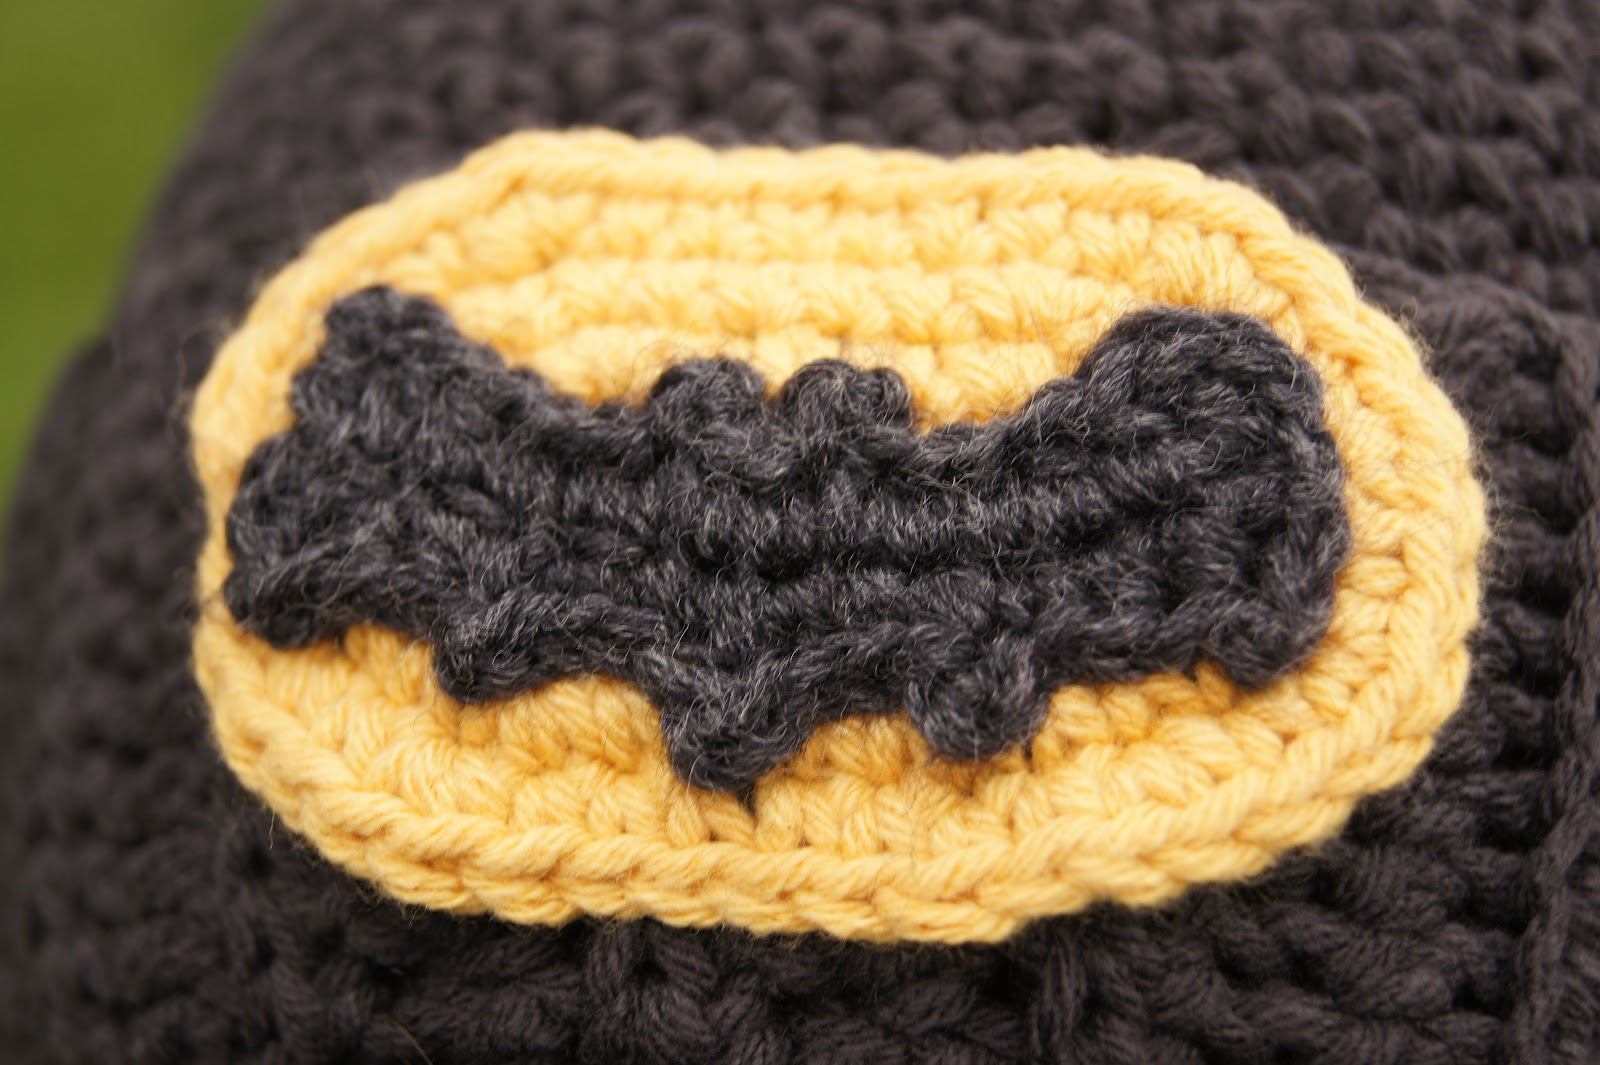 Free Crochet Pattern For Batman Hat : Batman Crochet Pattern Related Keywords - Batman Crochet ...